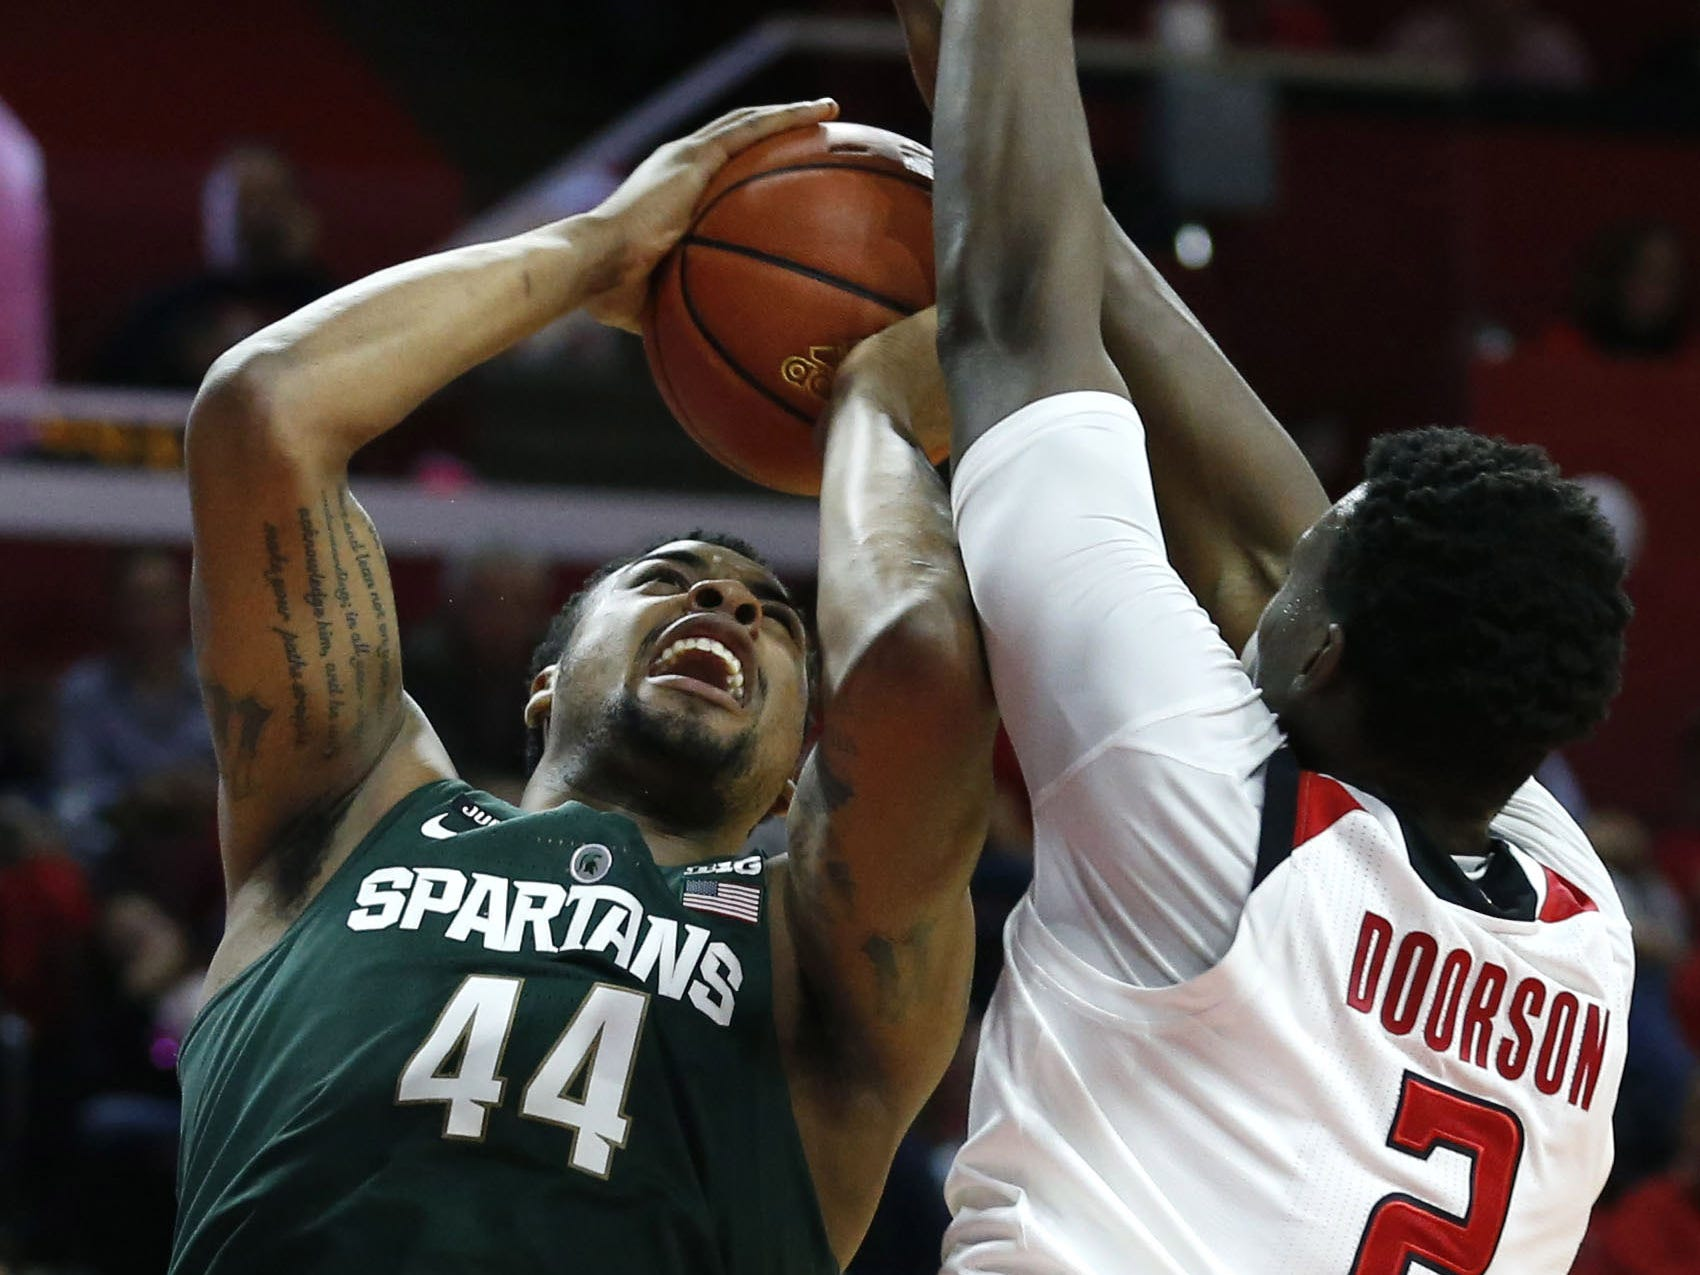 Nick Ward?s performance Tuesday prompted an animated discussion on the bench between him and MSU coach Tom Izzo.   Noah K. Murray/uSA TODAY Sports Dec 5, 2017; Piscataway, NJ, USA; Rutgers Scarlet Knights center Shaquille Doorson (2) defends against Michigan State Spartans forward Nick Ward (44) during first half at Louis Brown Athletic Center. Mandatory Credit: Noah K. Murray-USA TODAY Sports